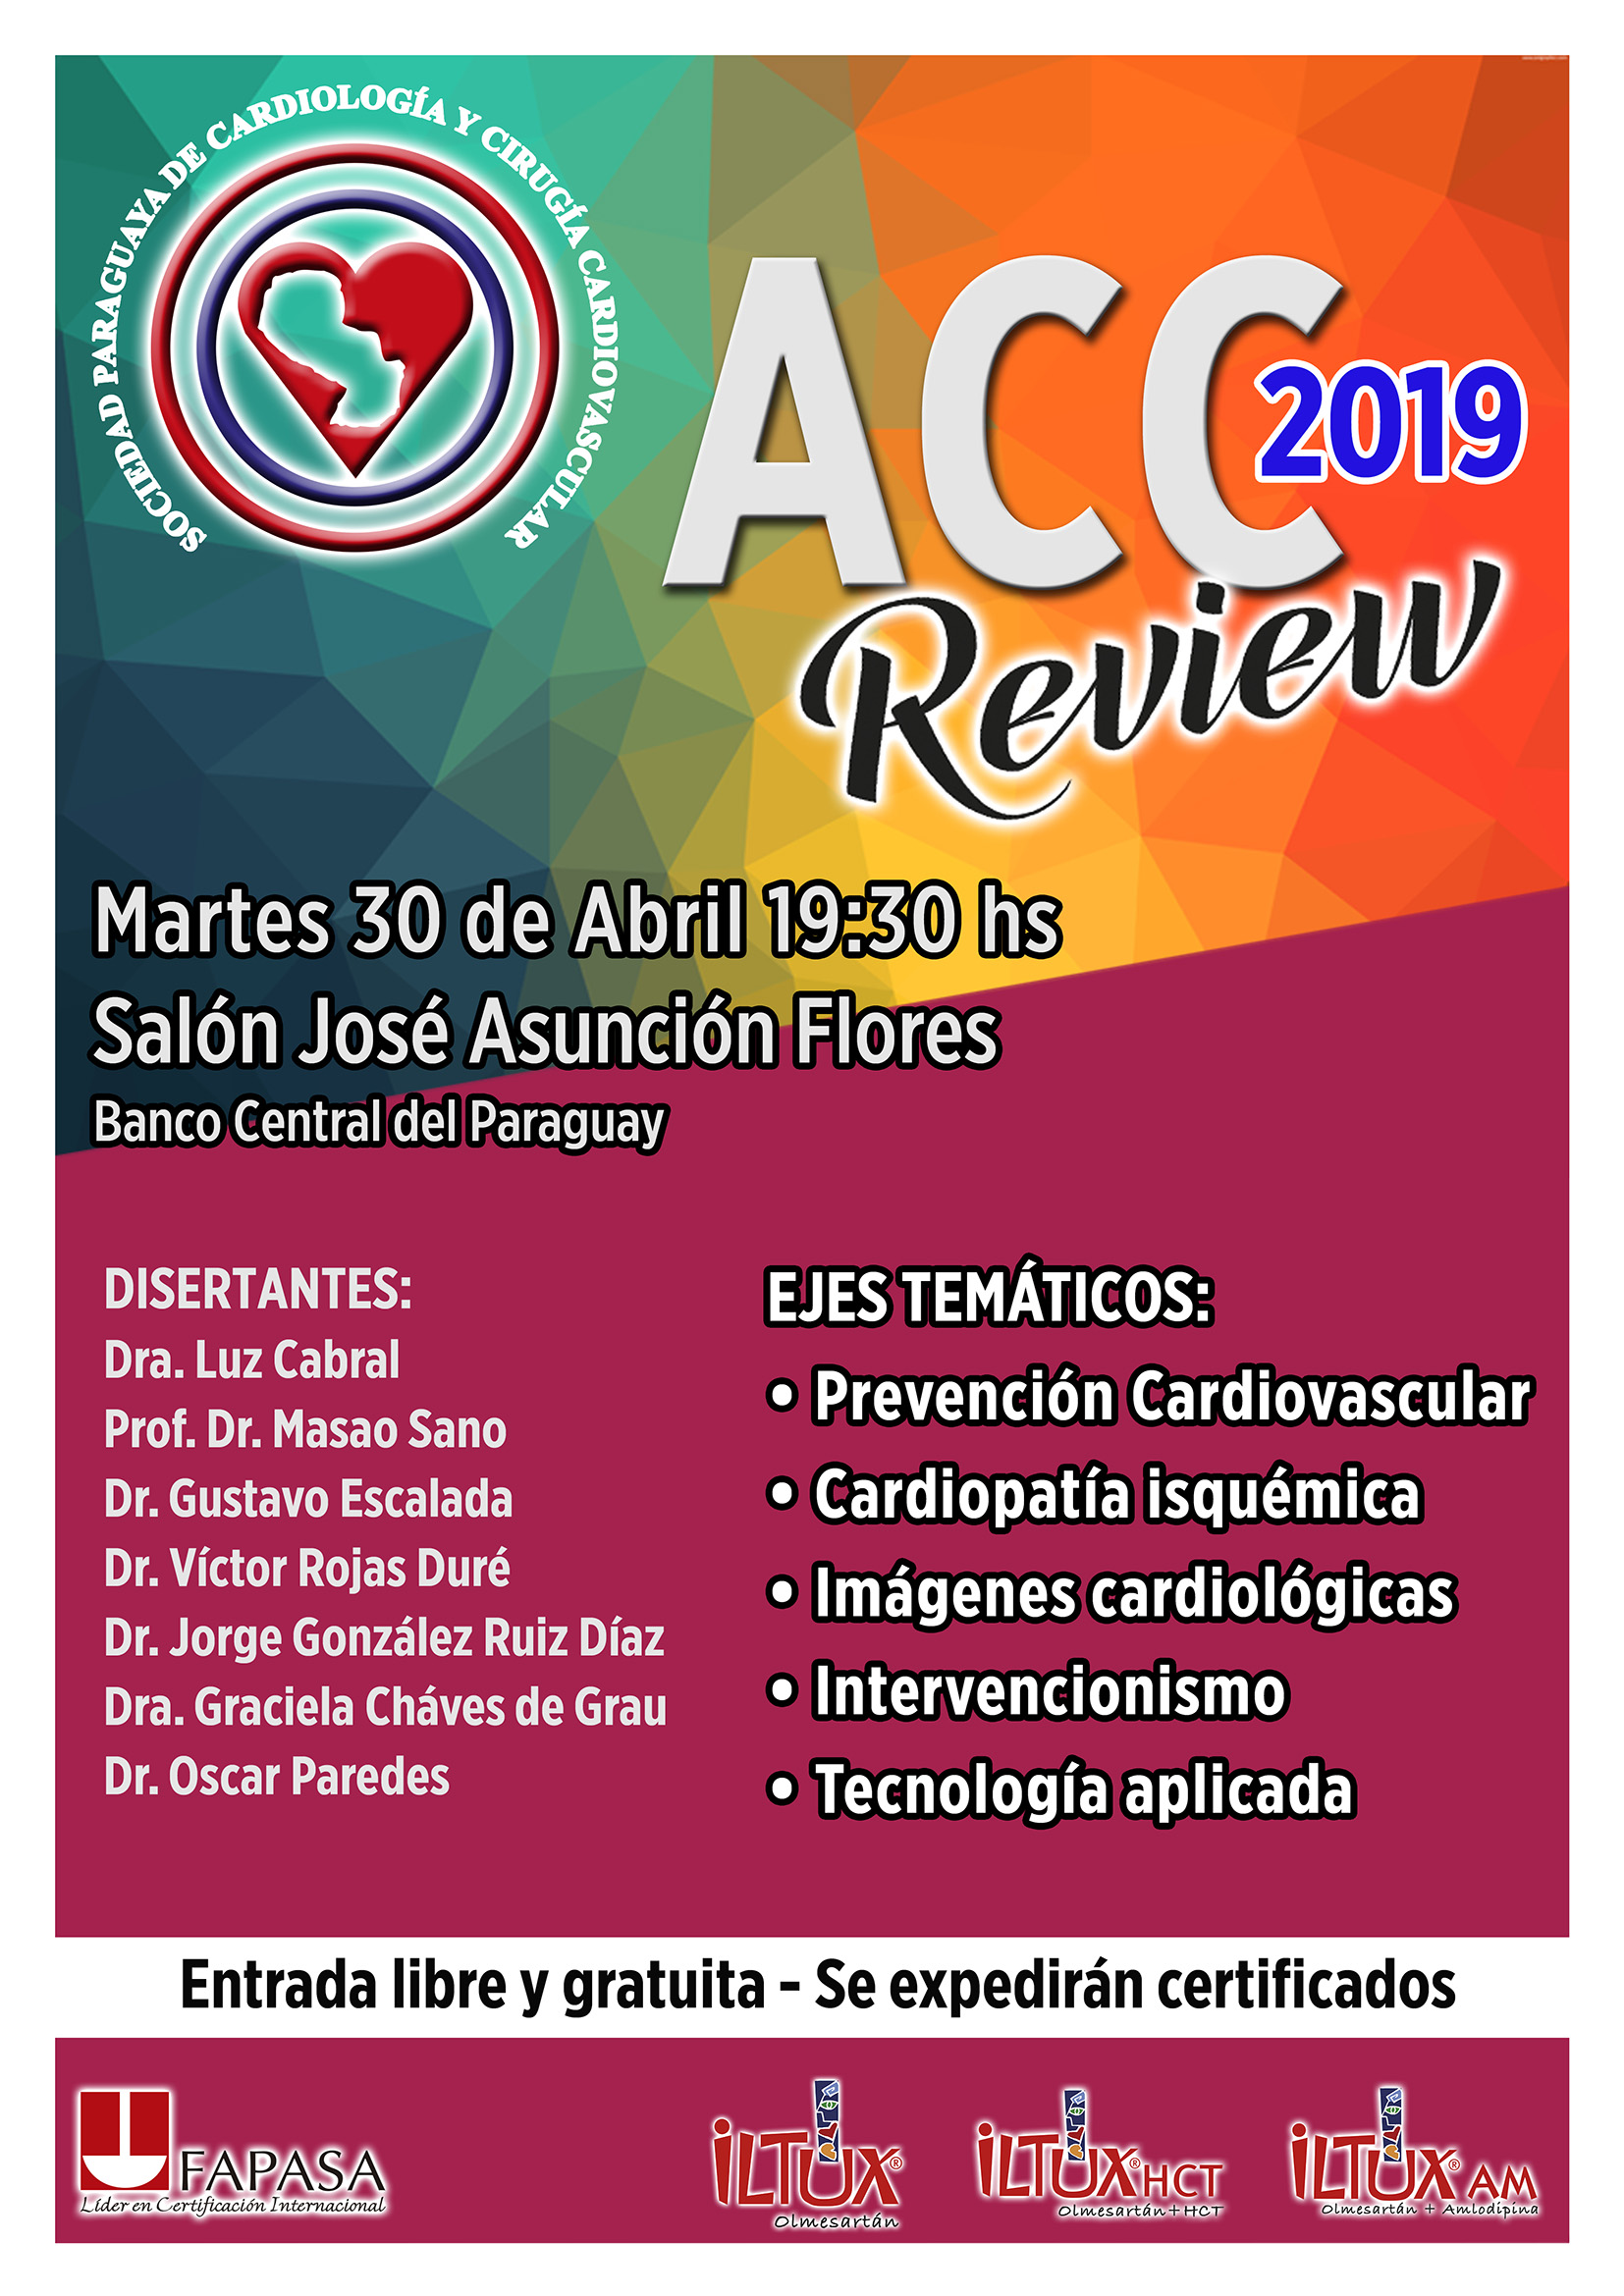 ACC Review 2019